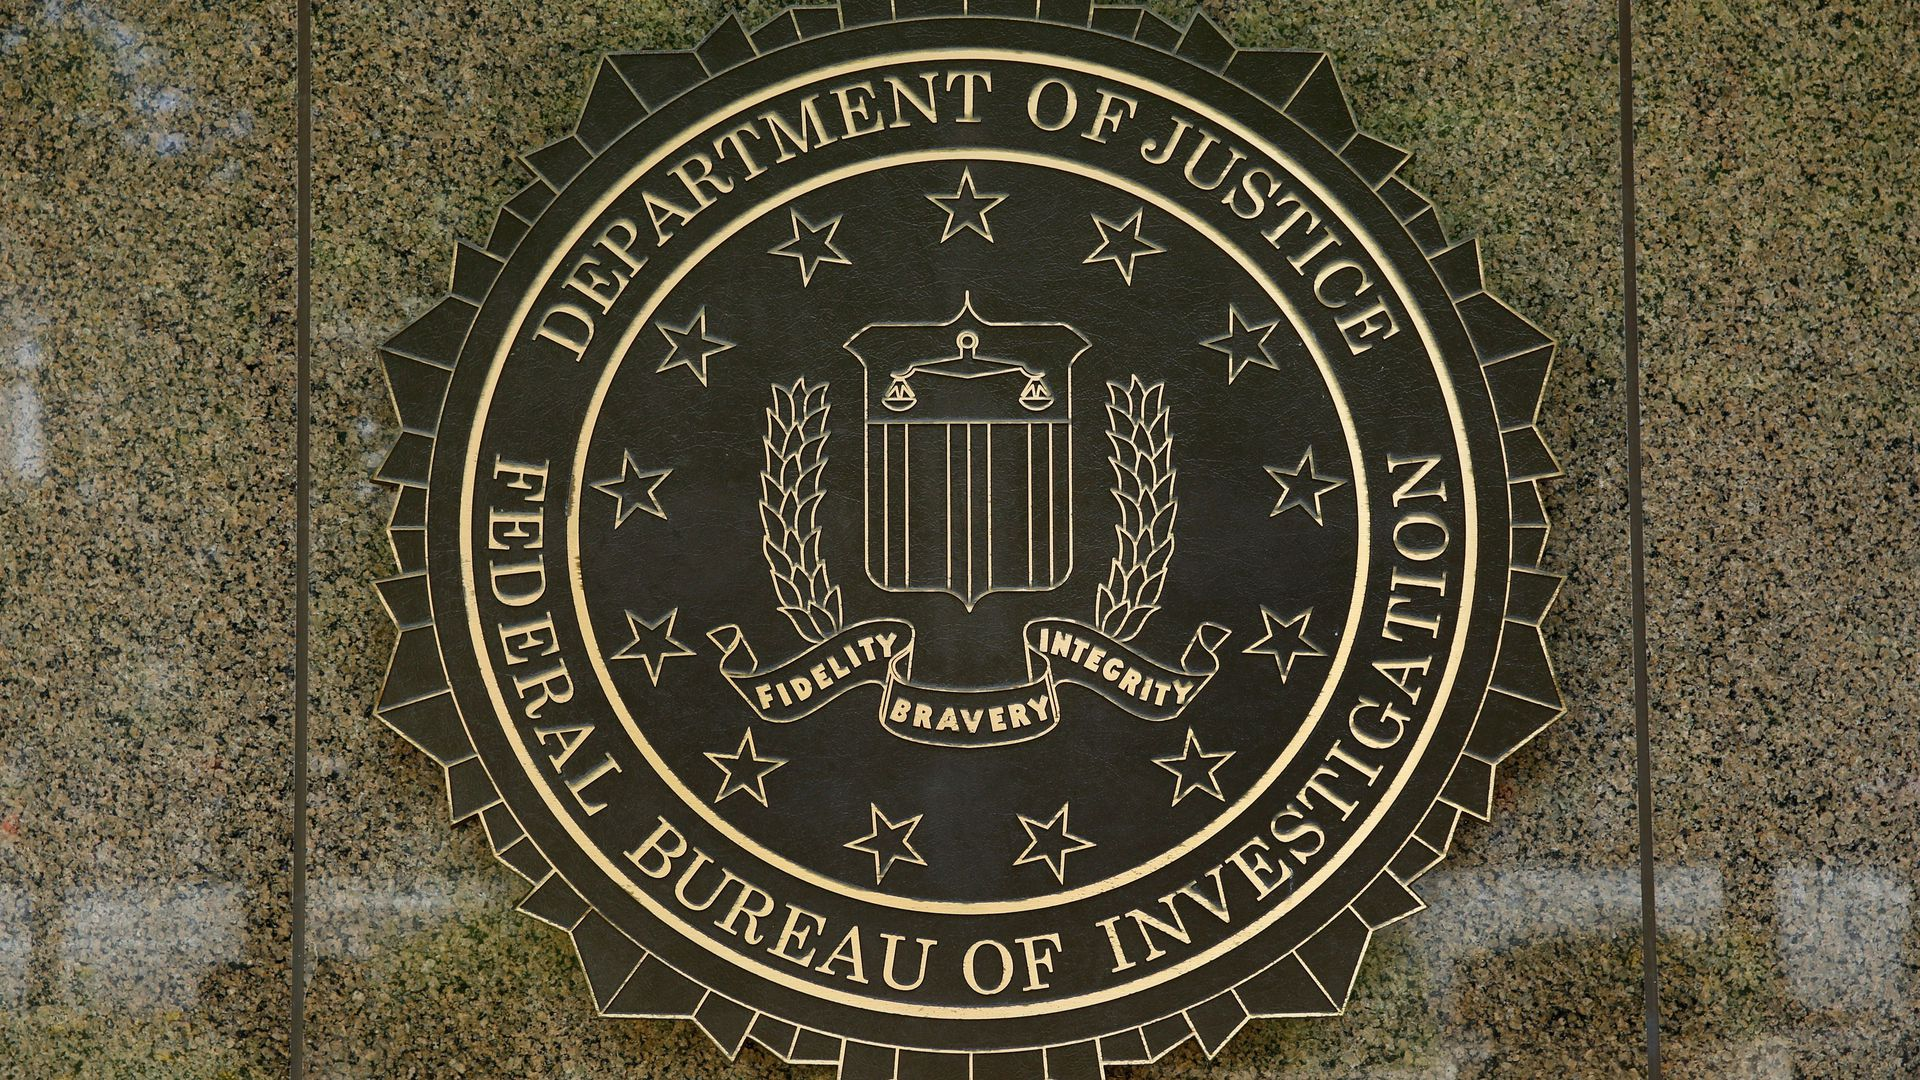 The FBI seal.